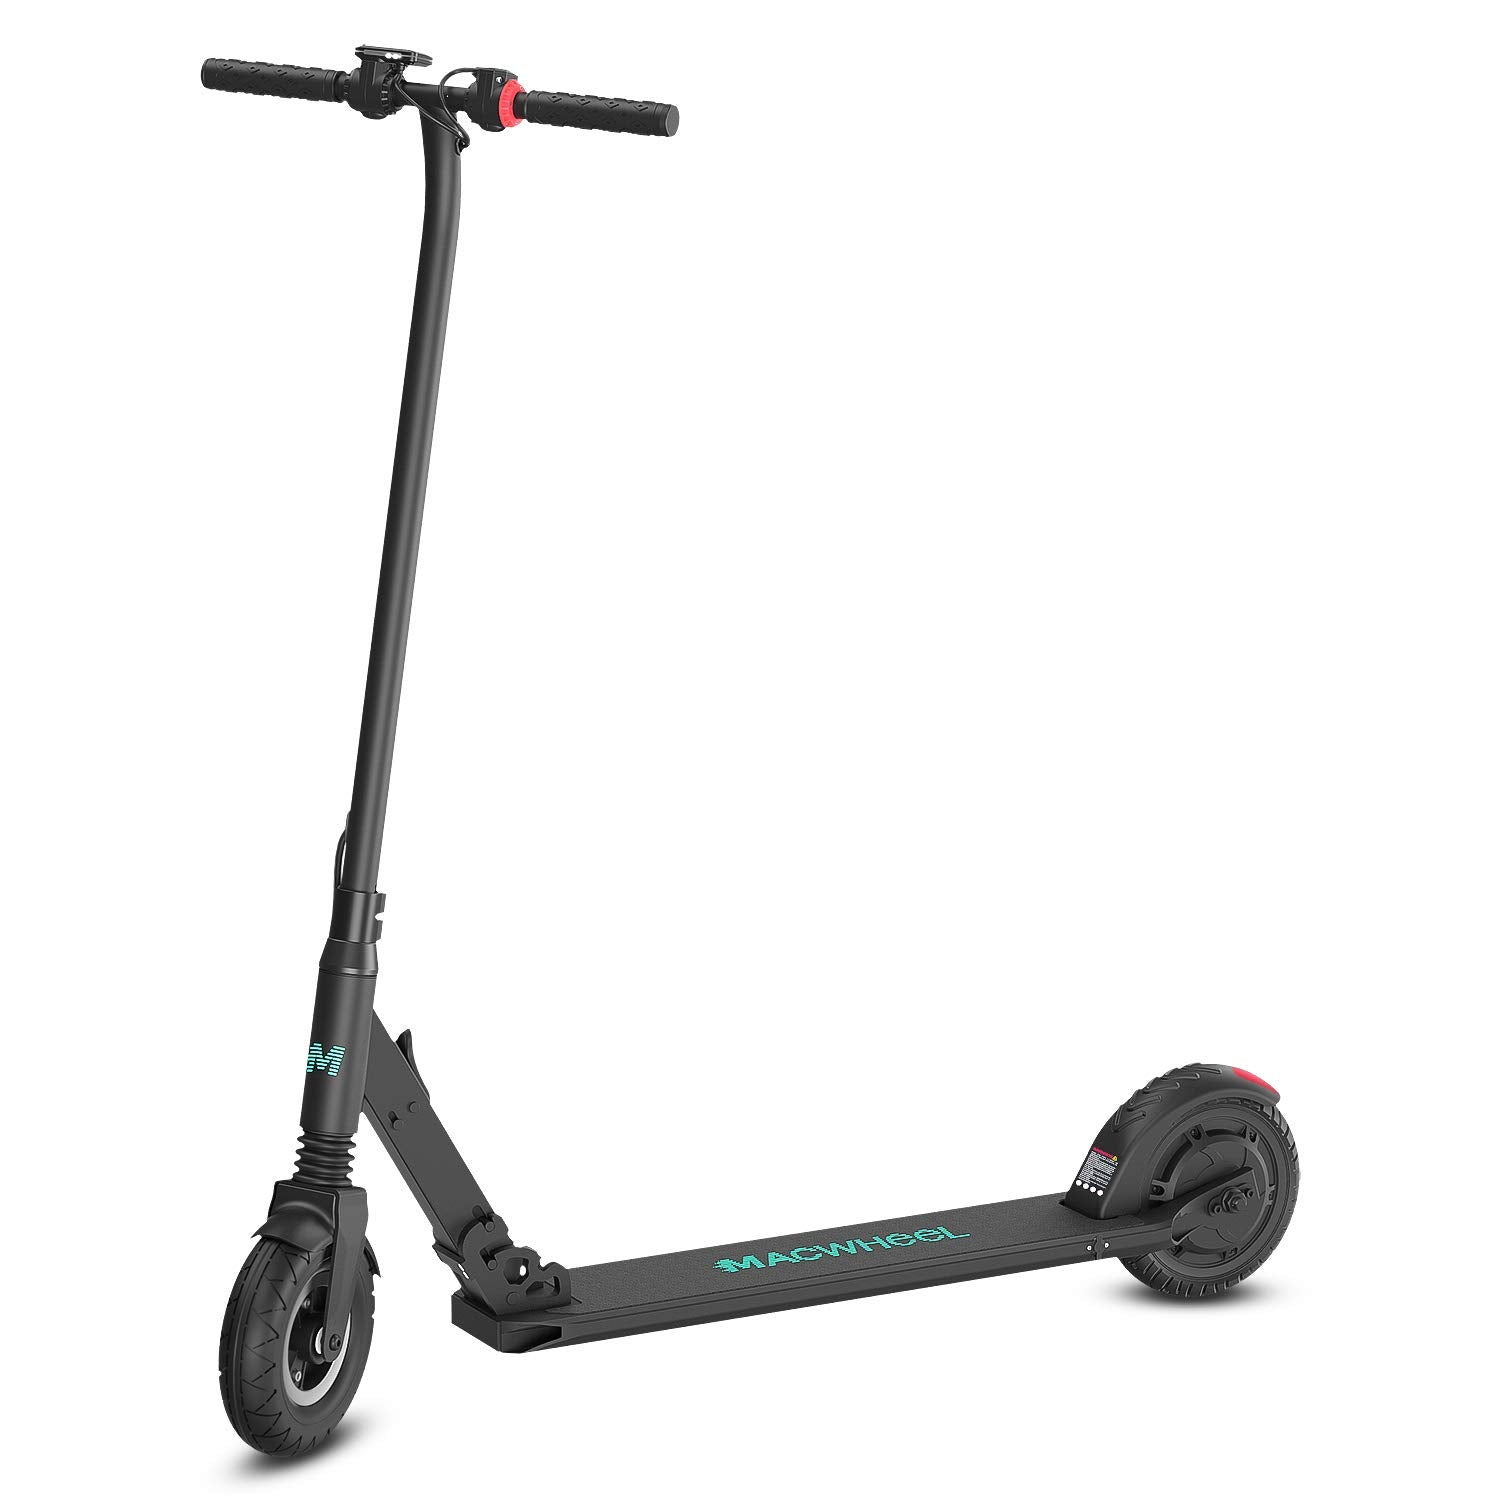 Foldable Lightweight Electric Scooter, 8